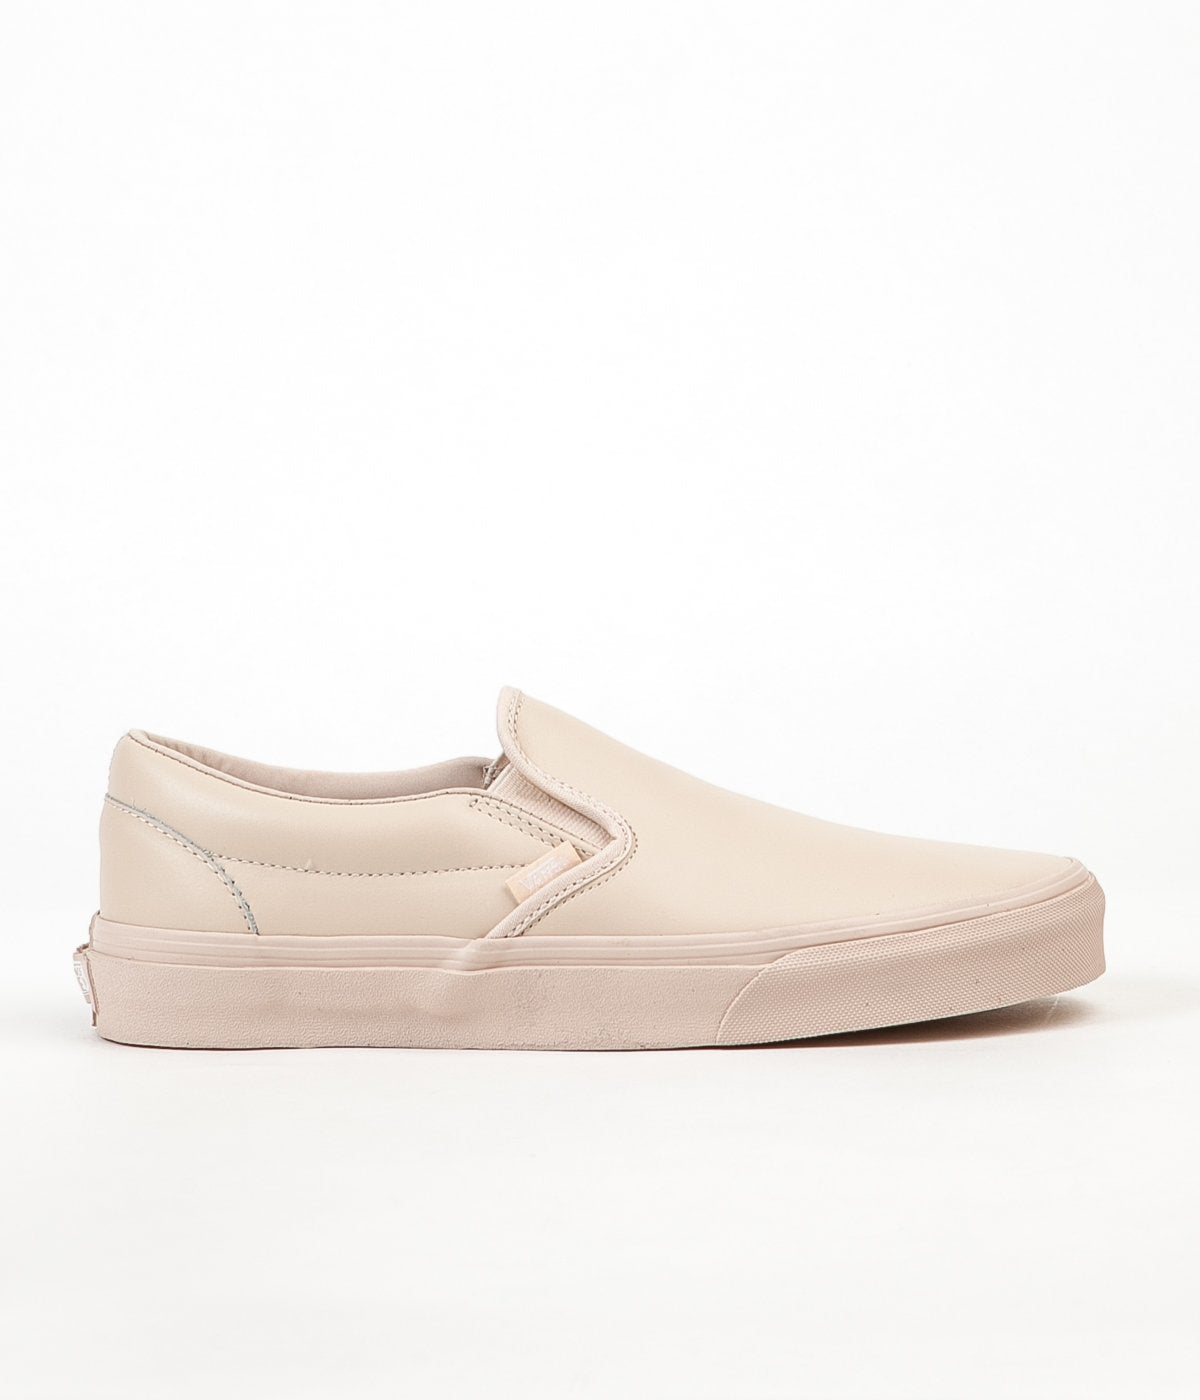 1440d300a37a ... Vans Classic Slip On Leather Shoes - Whisper Pink   Mono ...